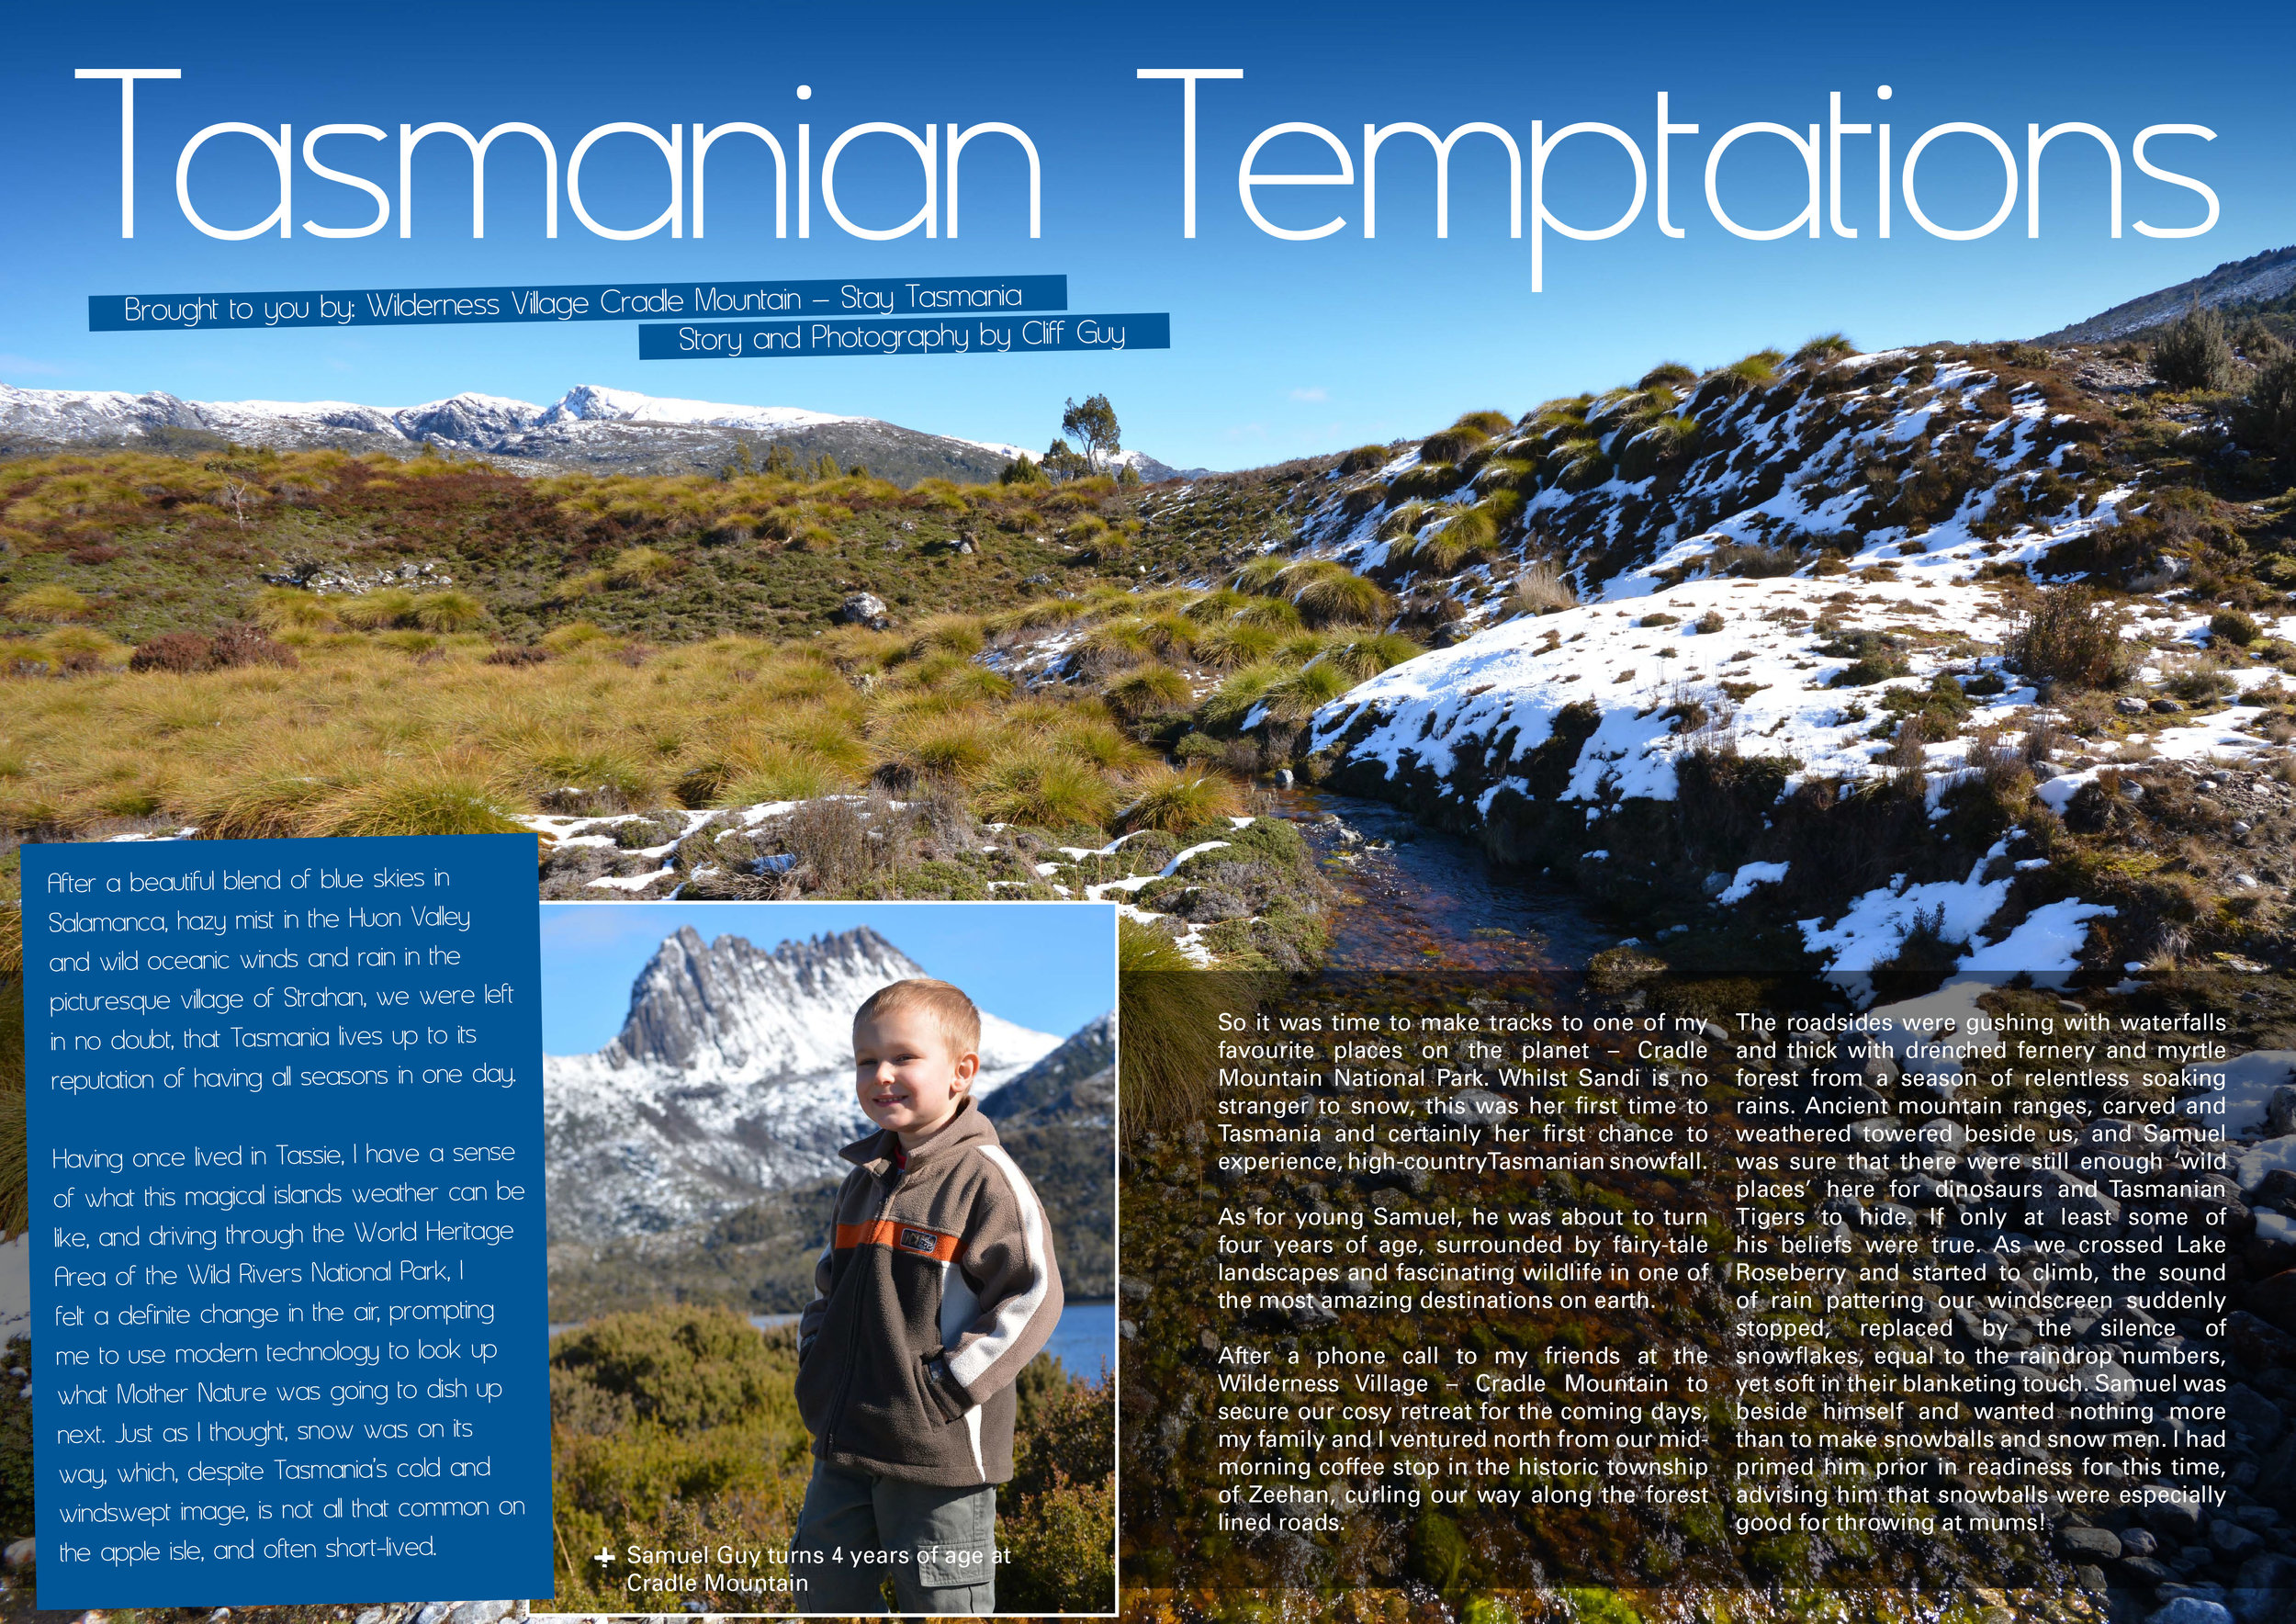 TasmanianTemptations-1.jpg